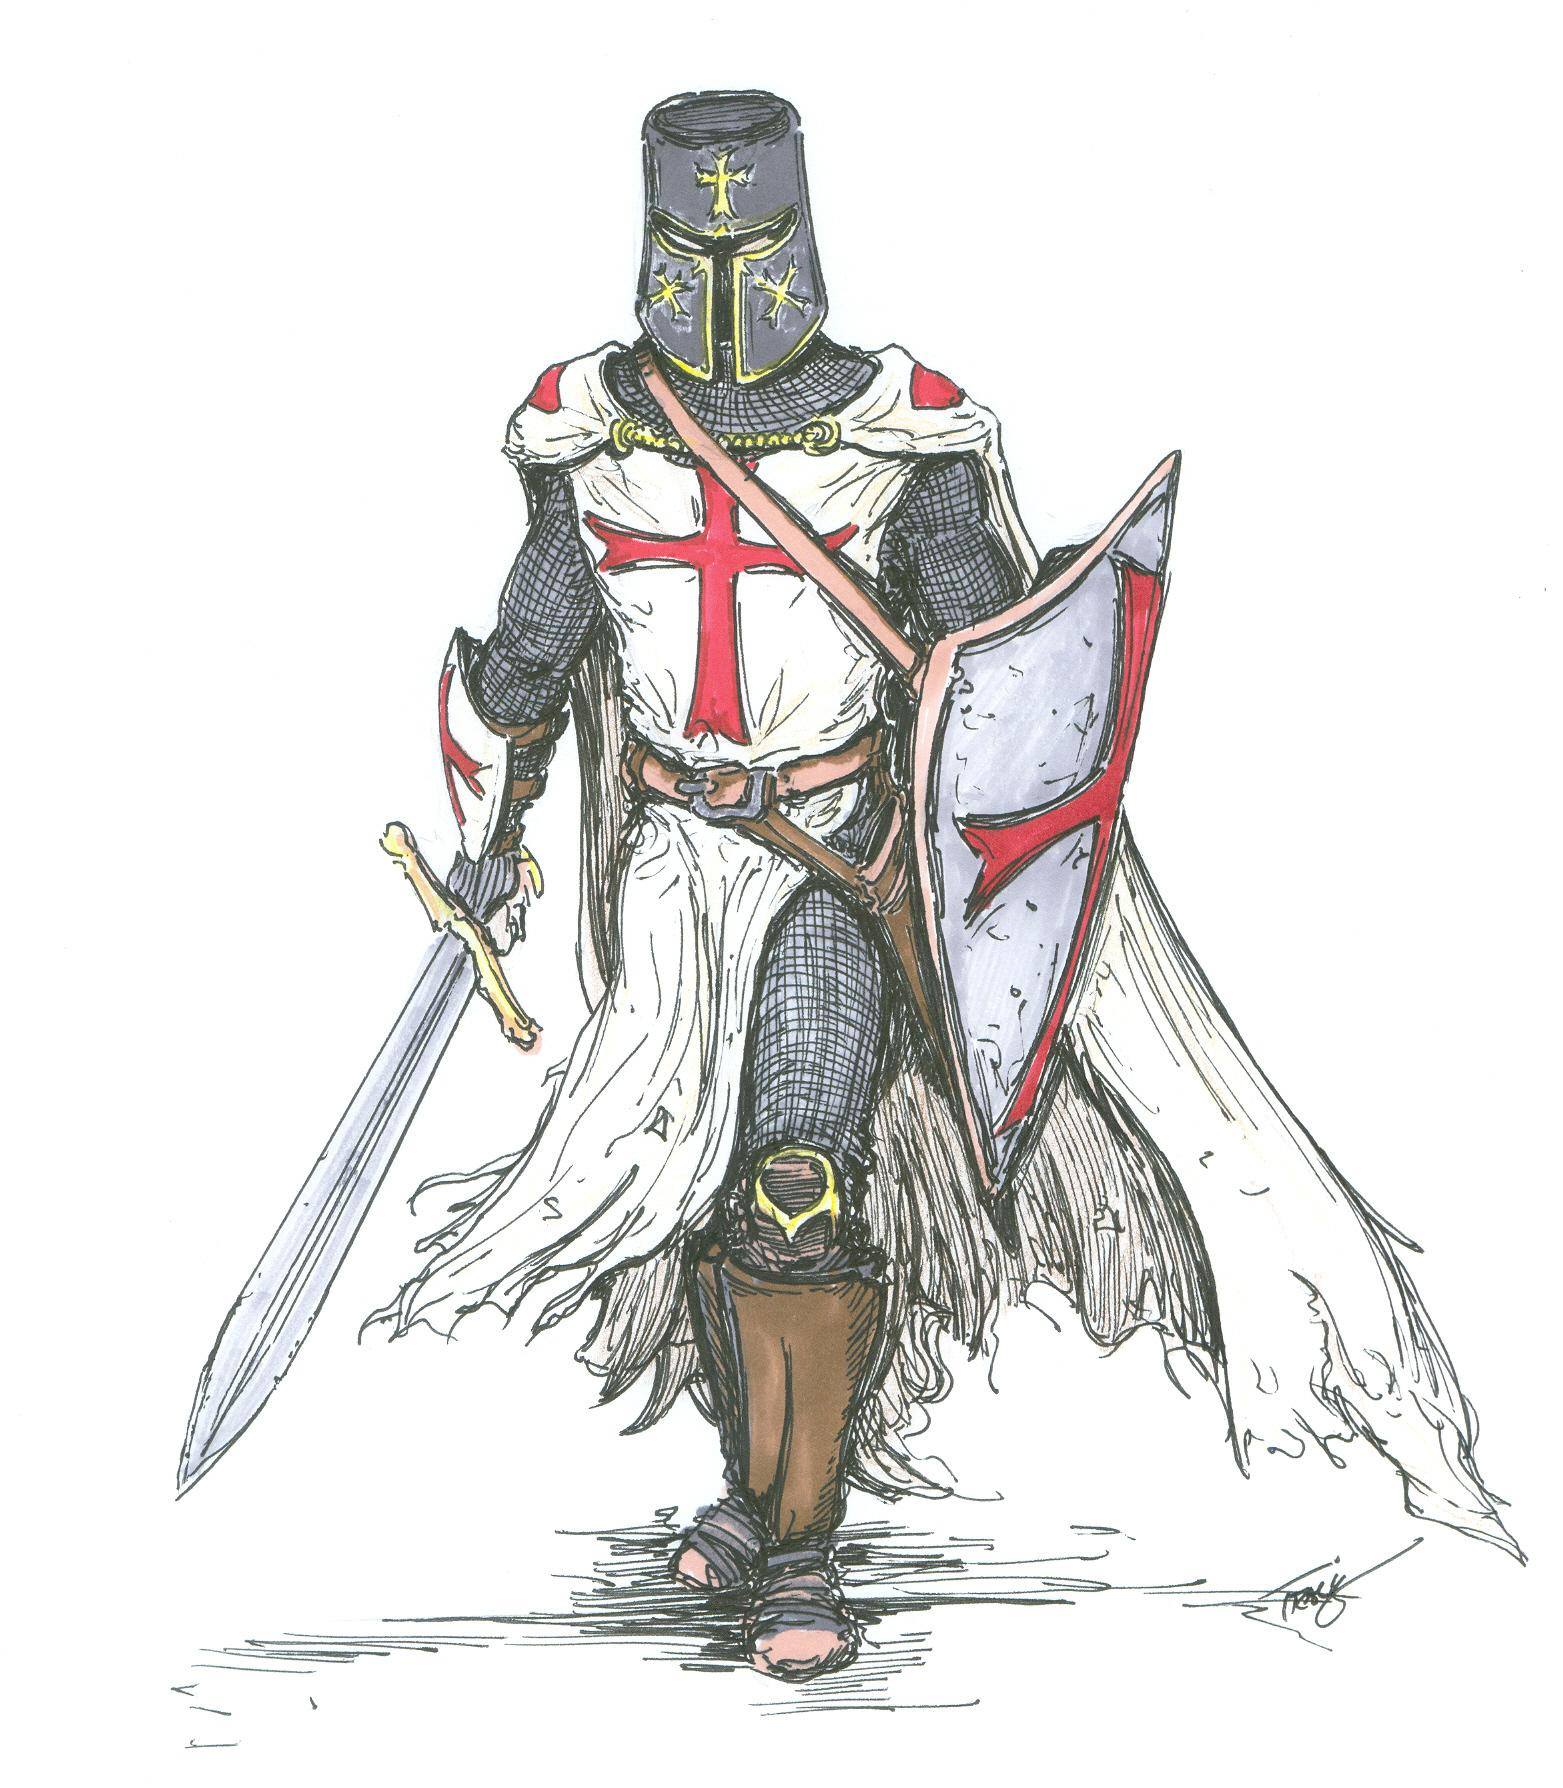 a comparison of medieval and modern archetypal heroes Ancient vs modern day heroes heroes during current times often reflect many of the same plot points as ancient hero stories there are many basic hero archetypes that are carried throughout the years some of these include the hero's journey.